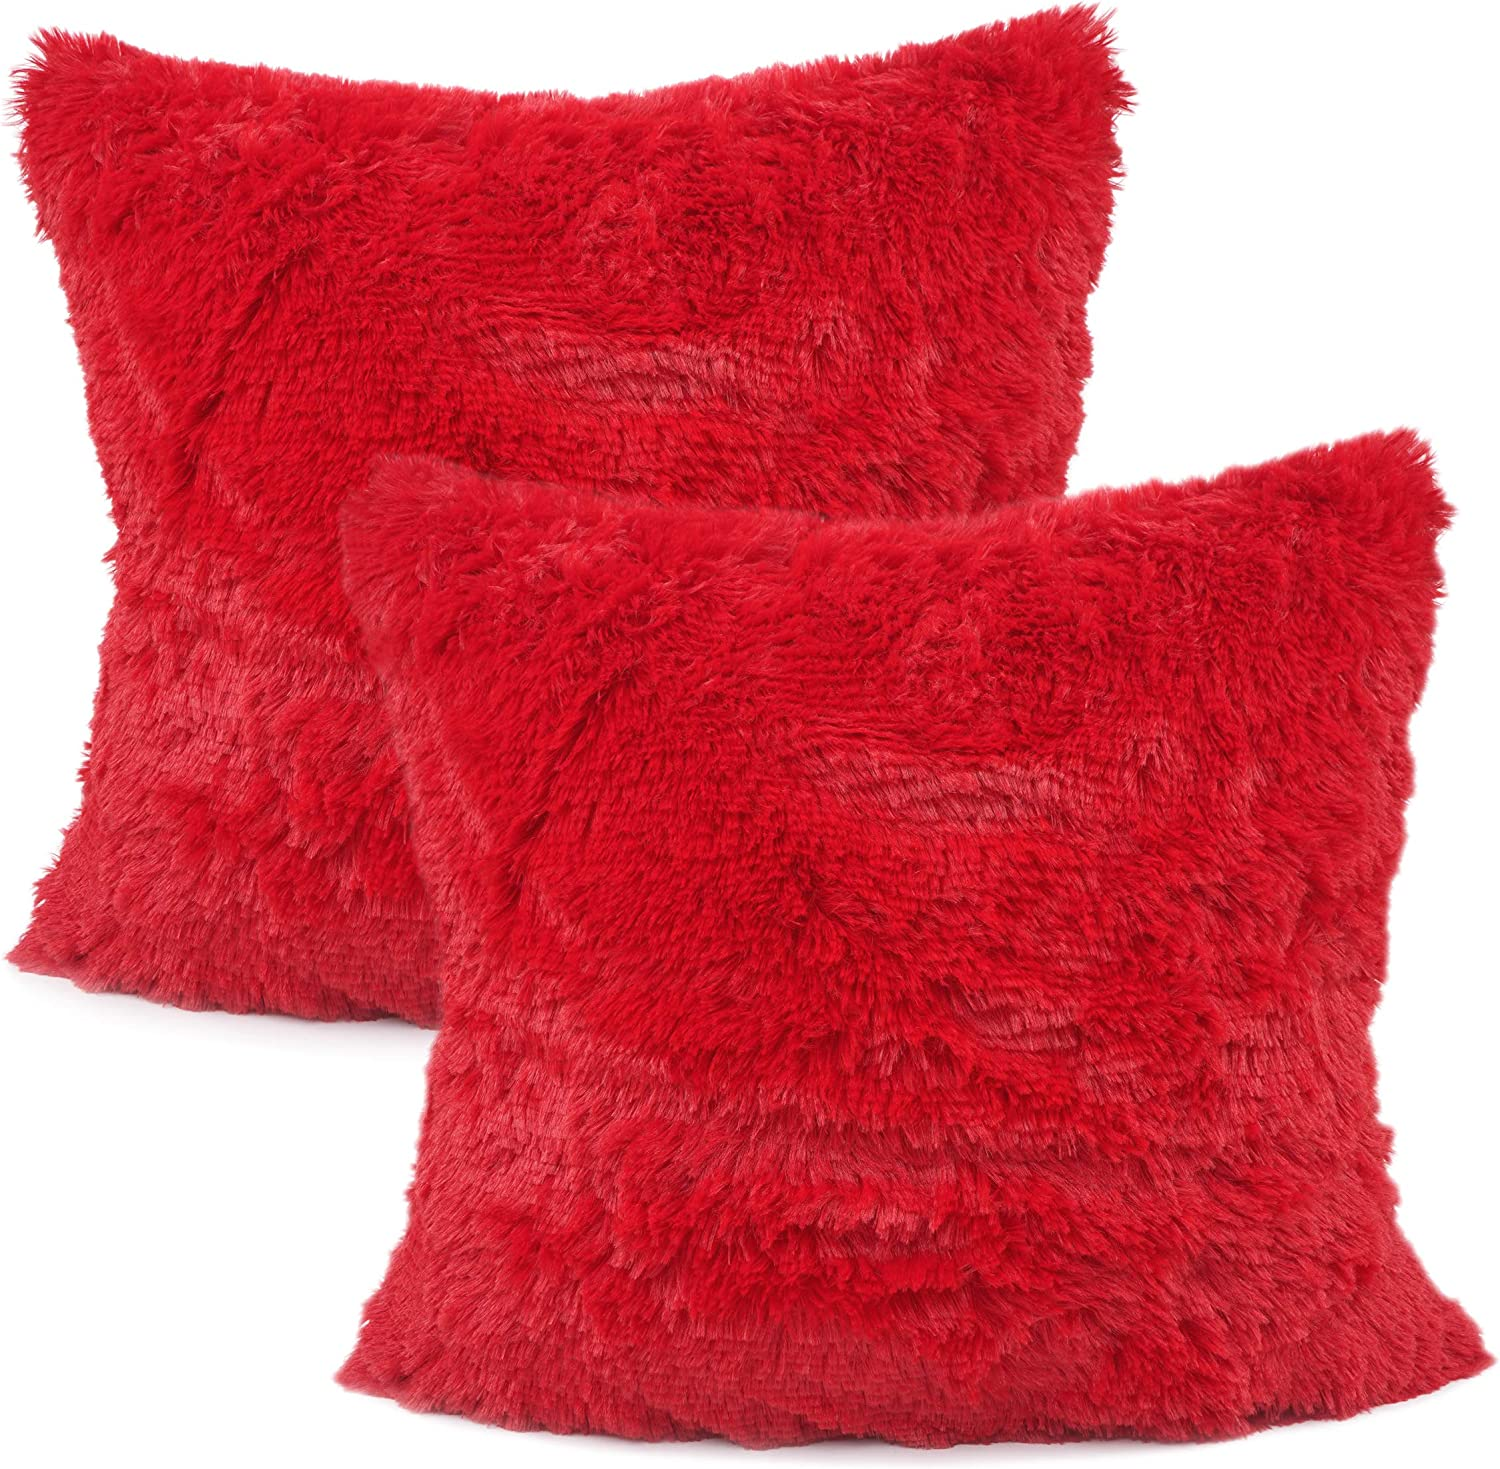 """YOUR SMILE Pack of 2, Christmas Decorative New Luxury Series Merino Style Faux Fur Throw Pillow Case Cushion Cover 18"""" x 18""""(Red)"""